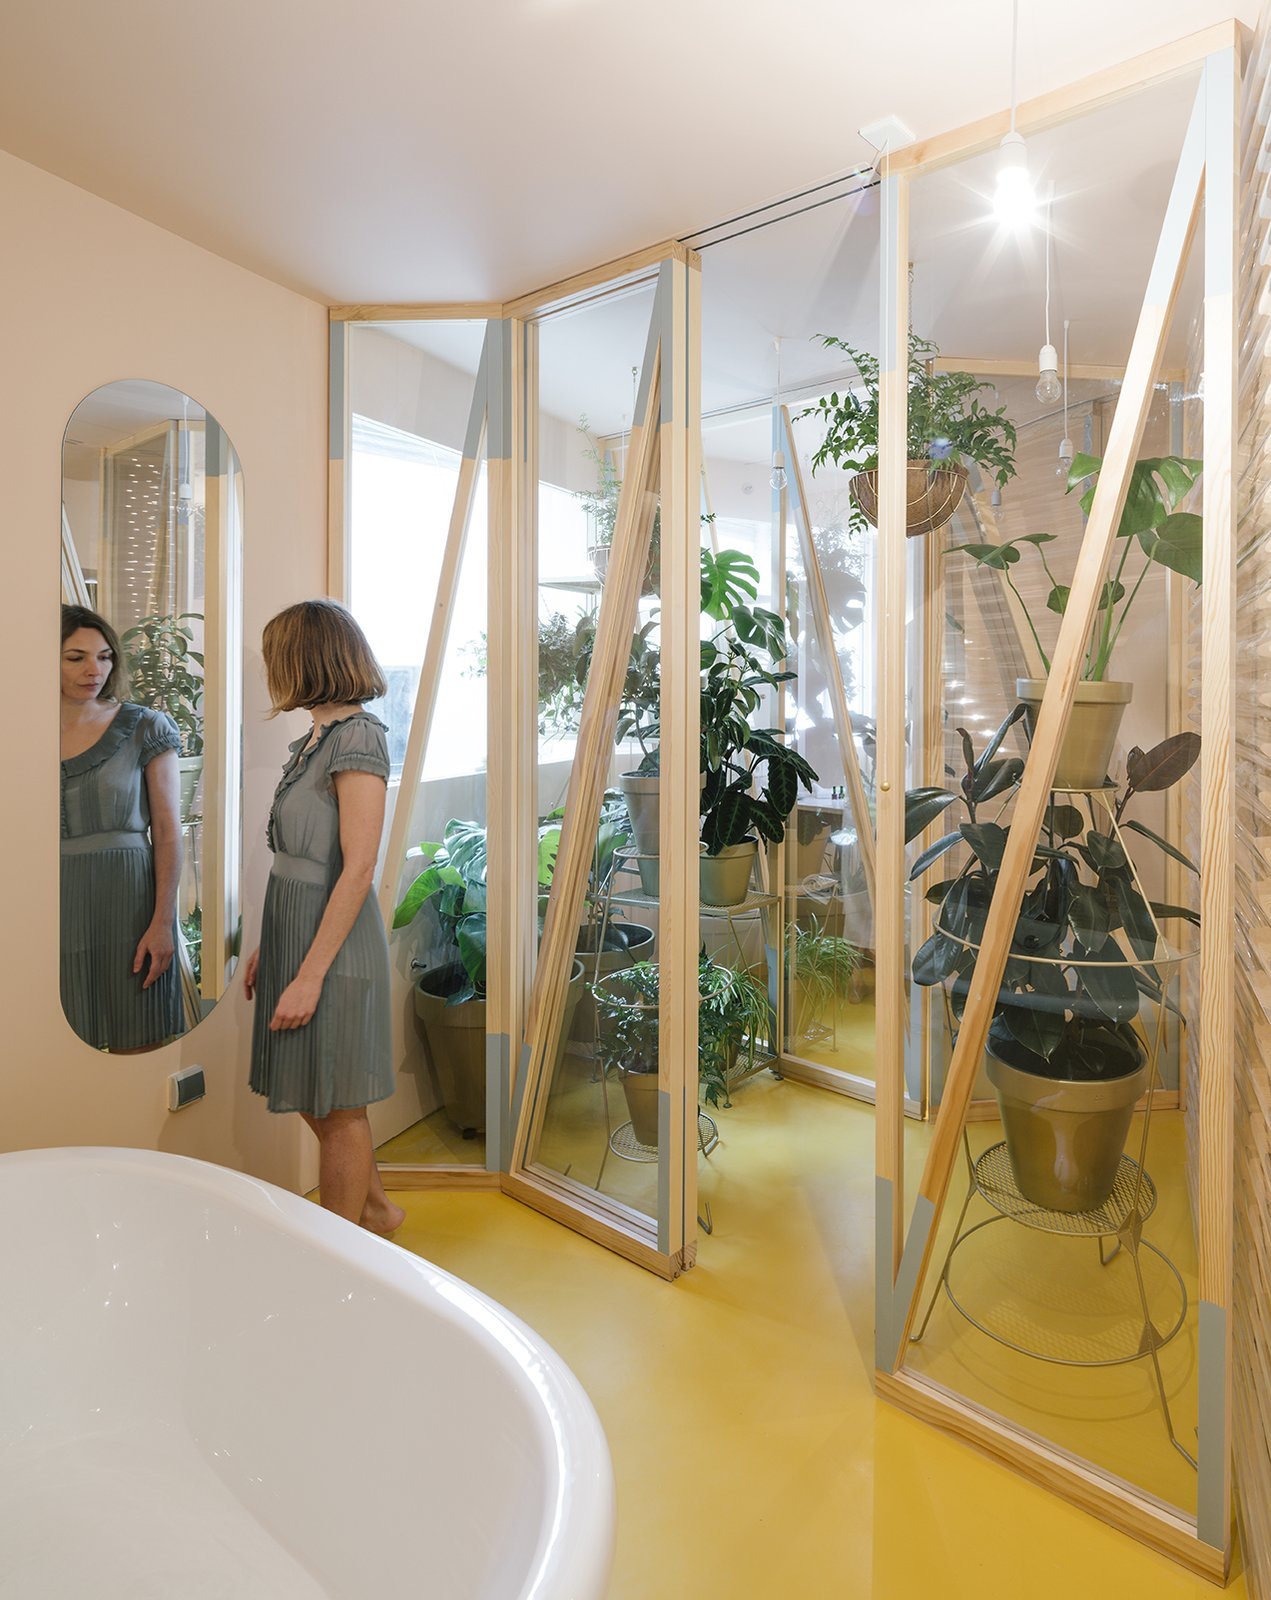 Photo 1 of 7 in A Quirky Renovation Brings an Indoor Garden to the Center of Madrid